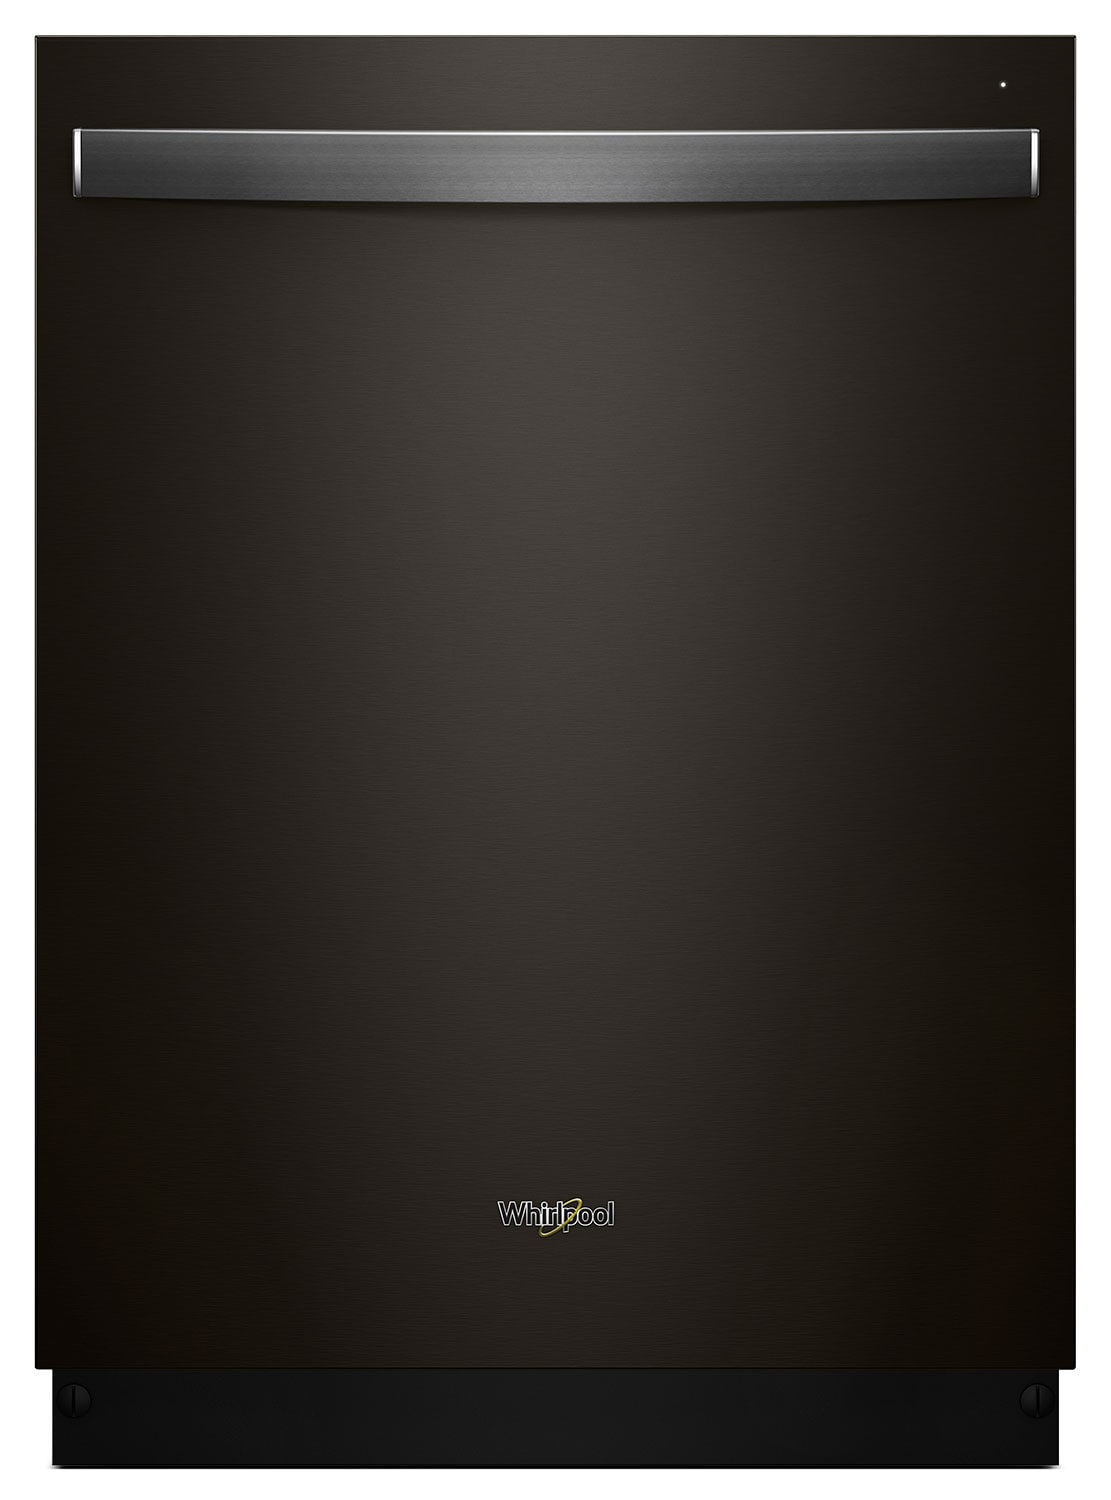 Whirlpool® Stainless Steel Tub Dishwasher with Third Level Rack – WDT970SAHV